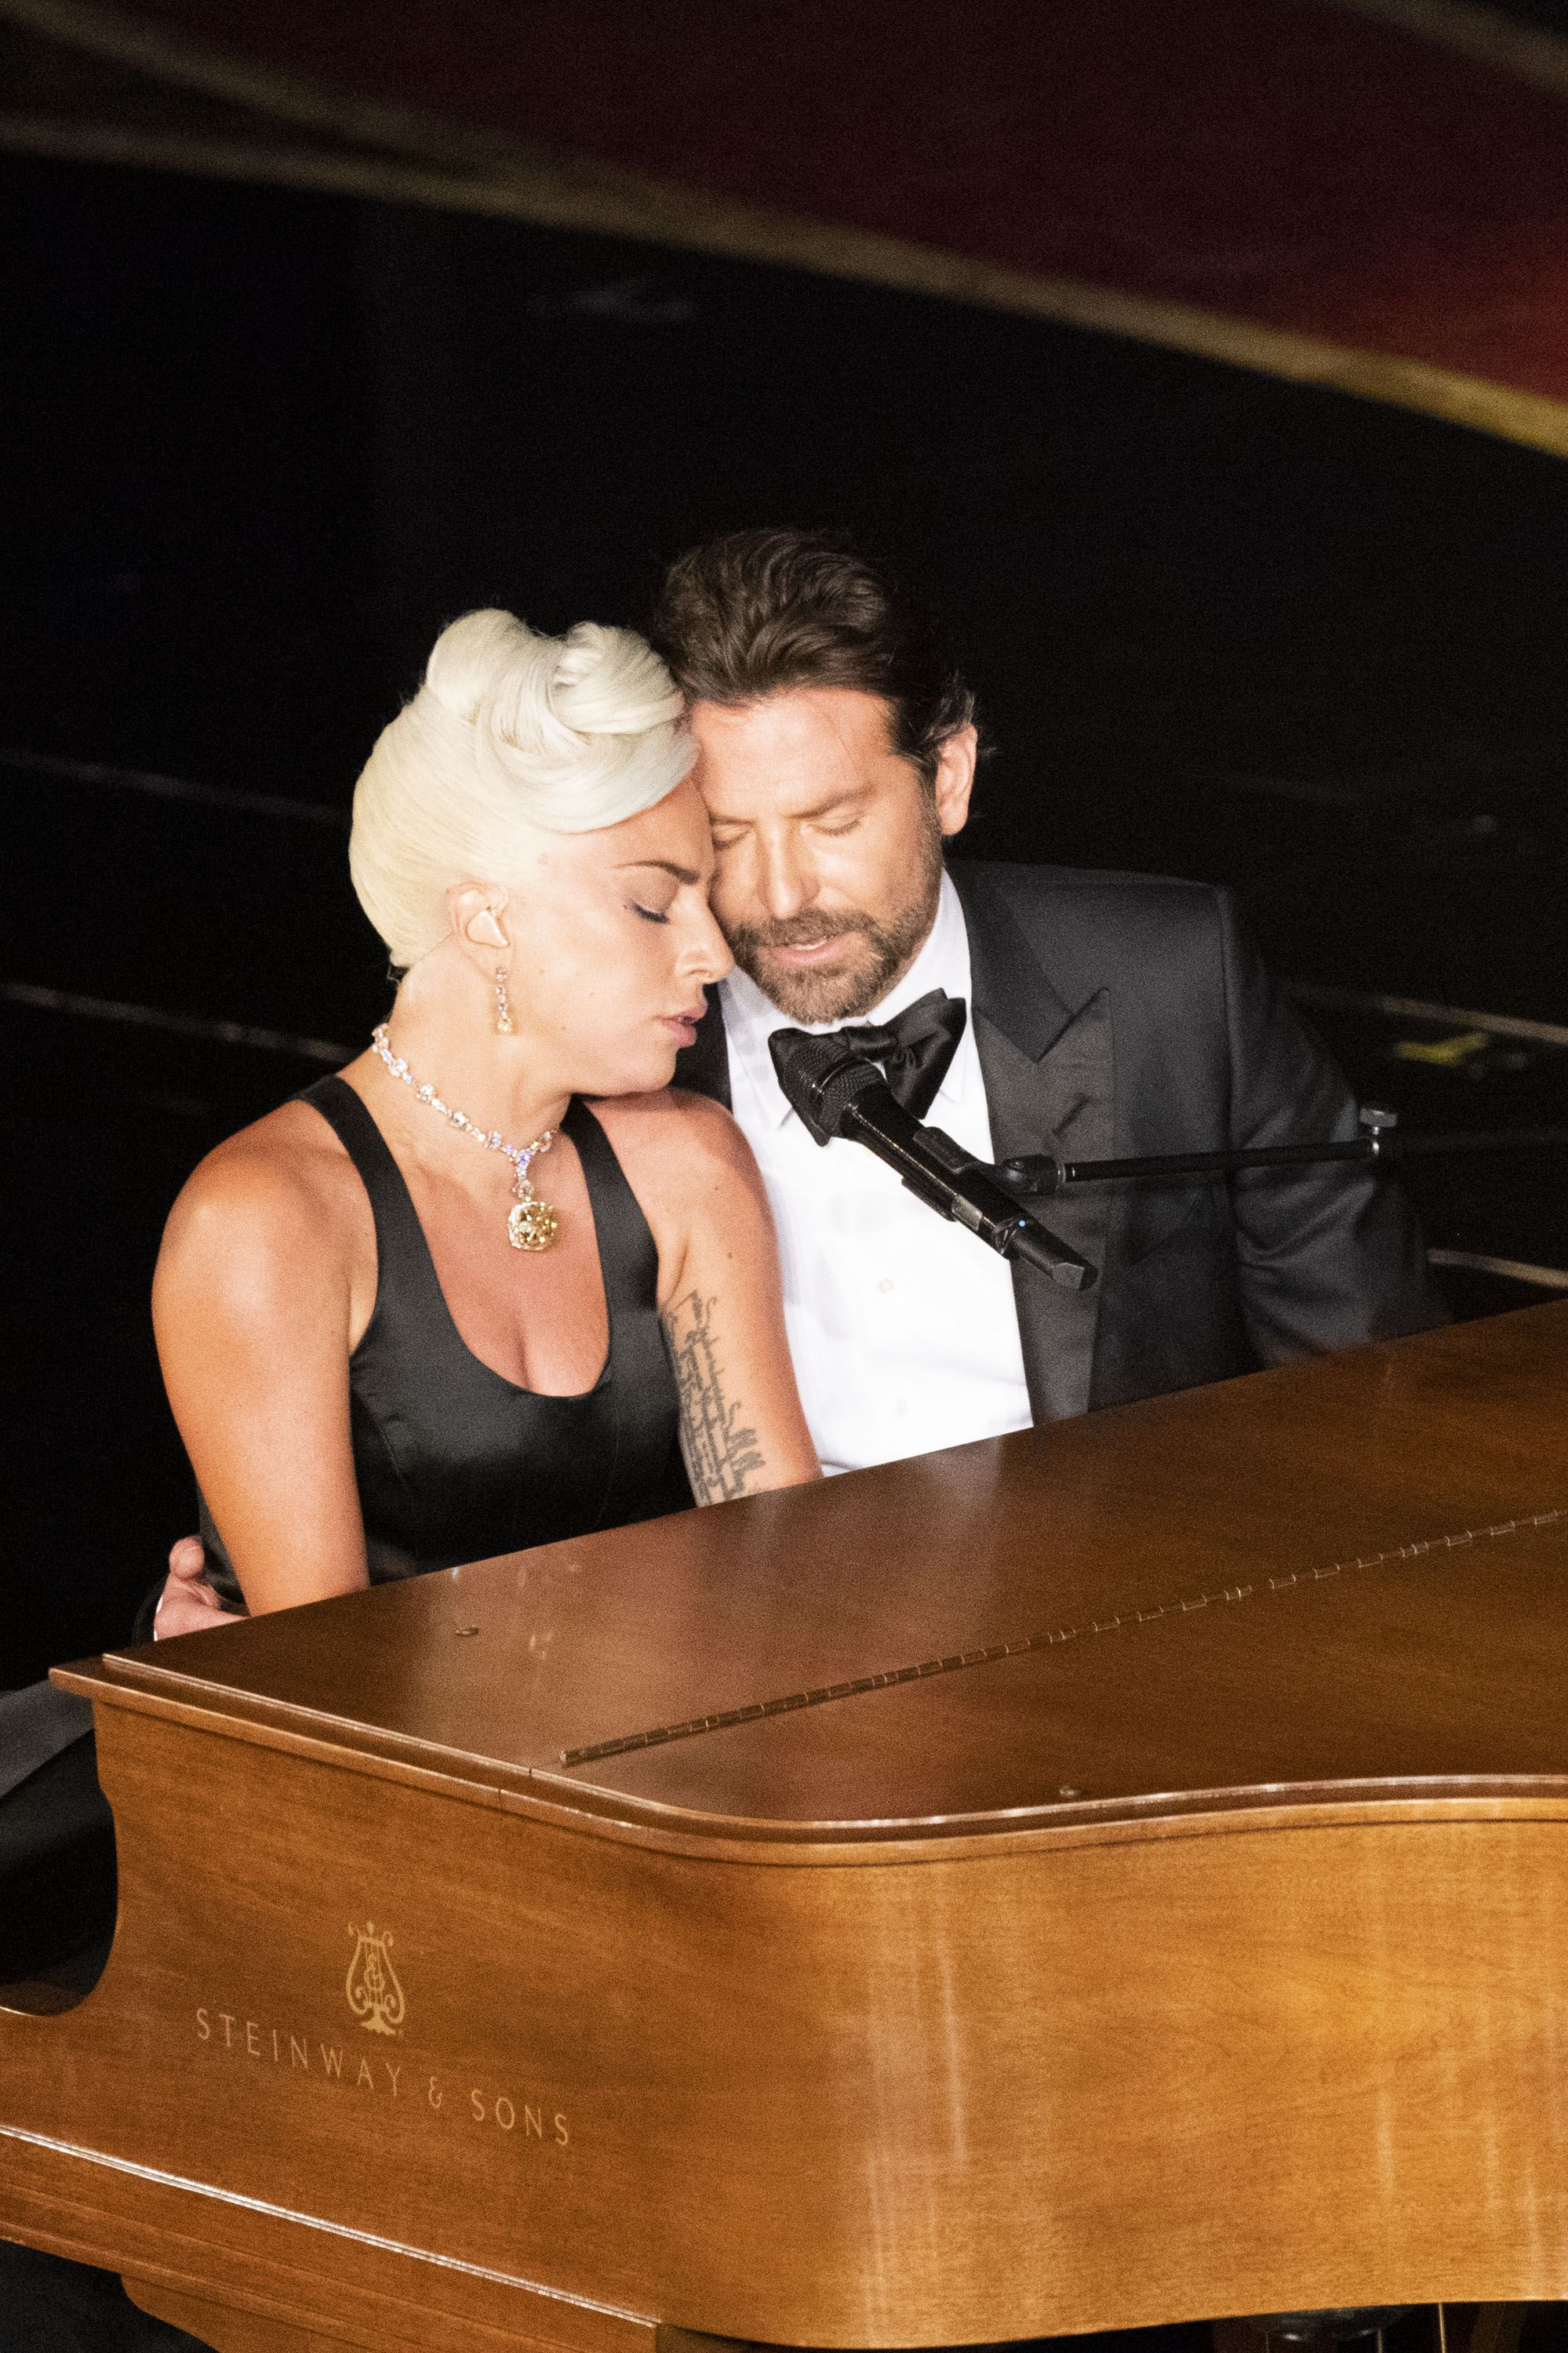 Bradley Cooper and Lady Gaga reportedly haven't see each other since the Oscars